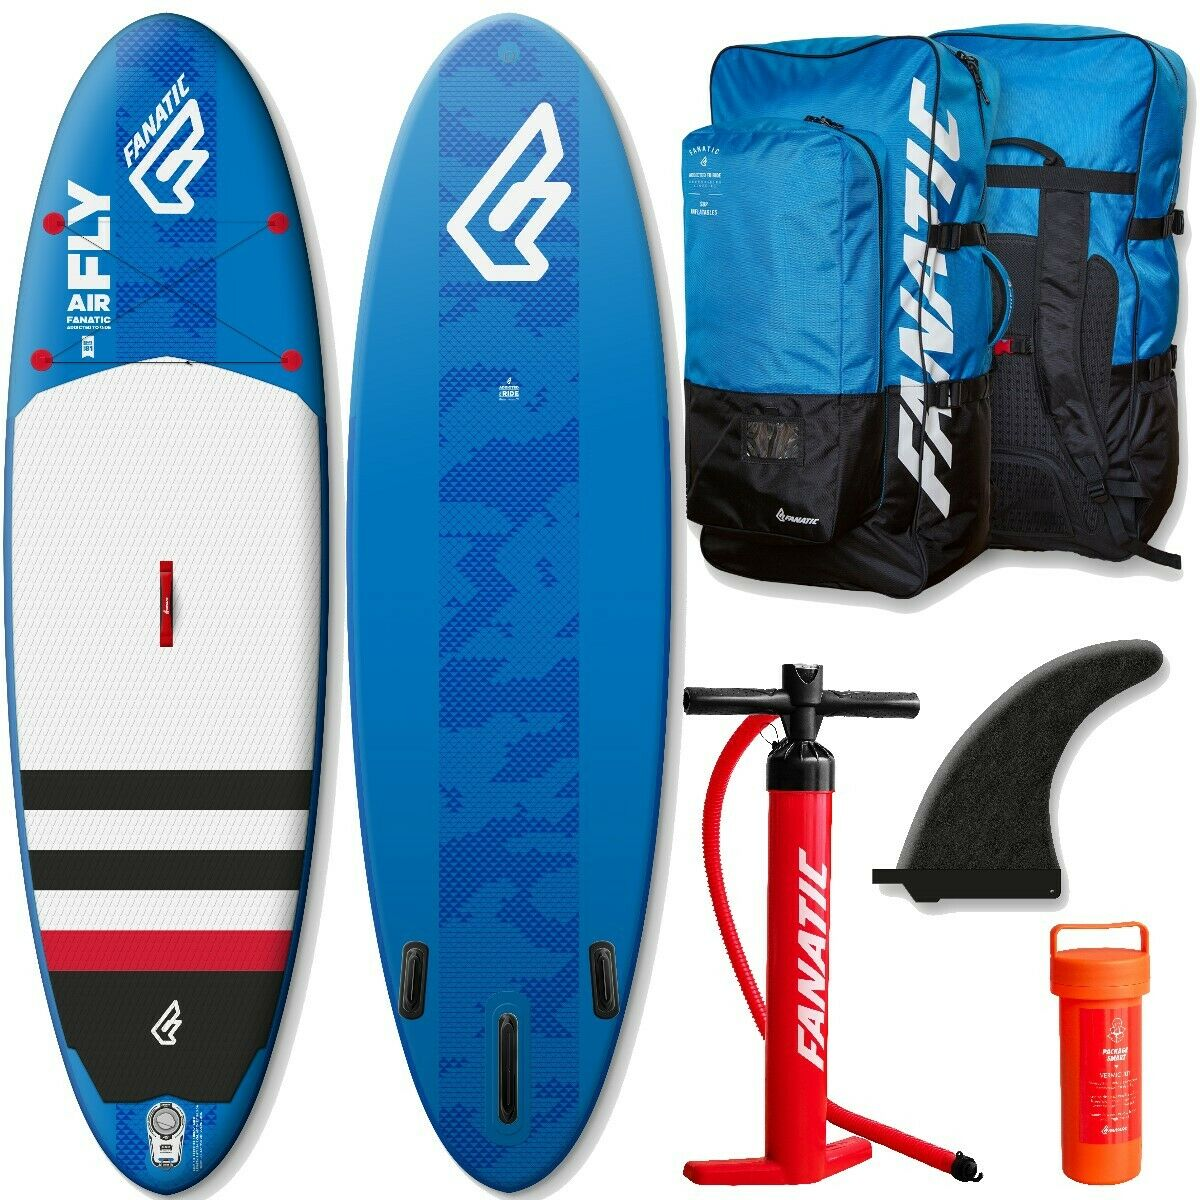 Fanatic Sup Fly Air Gonflable Sup Stand Up Paddle Planche Planche de Surf